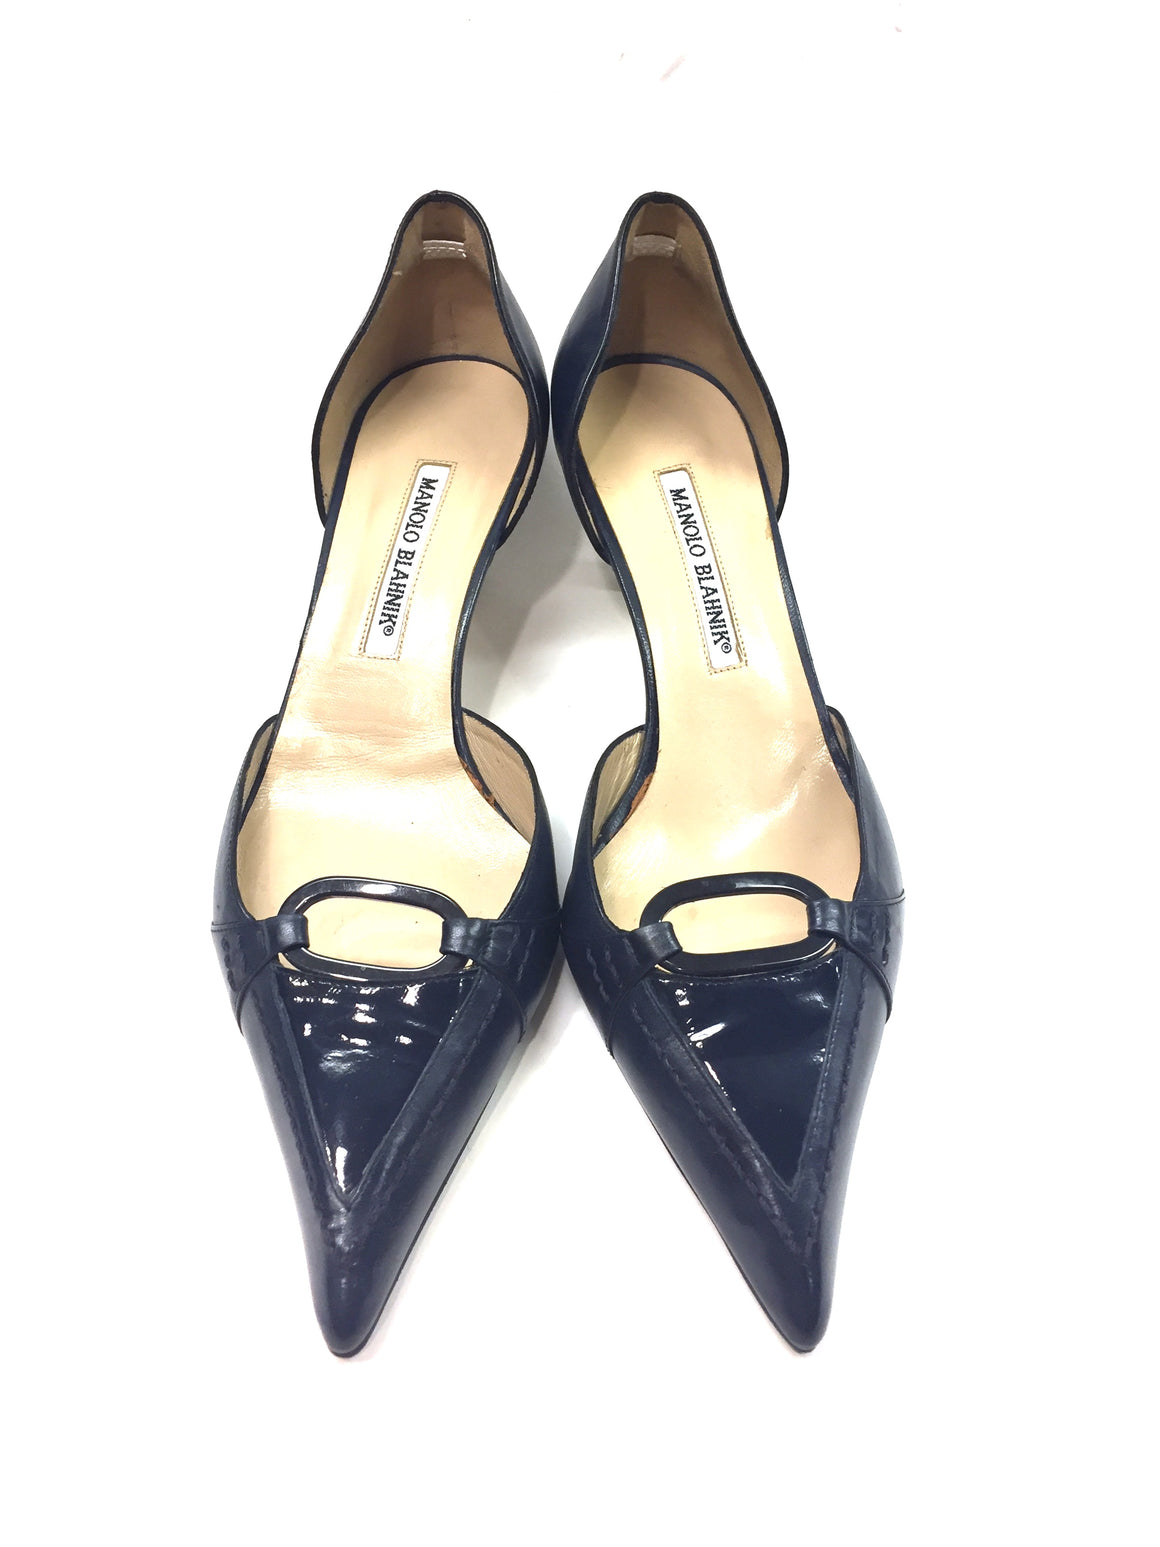 MANOLO BLAHNIK Navy Leather Pointed-Toe Kitten-Heel D'Orsay Pumps Sz39.5